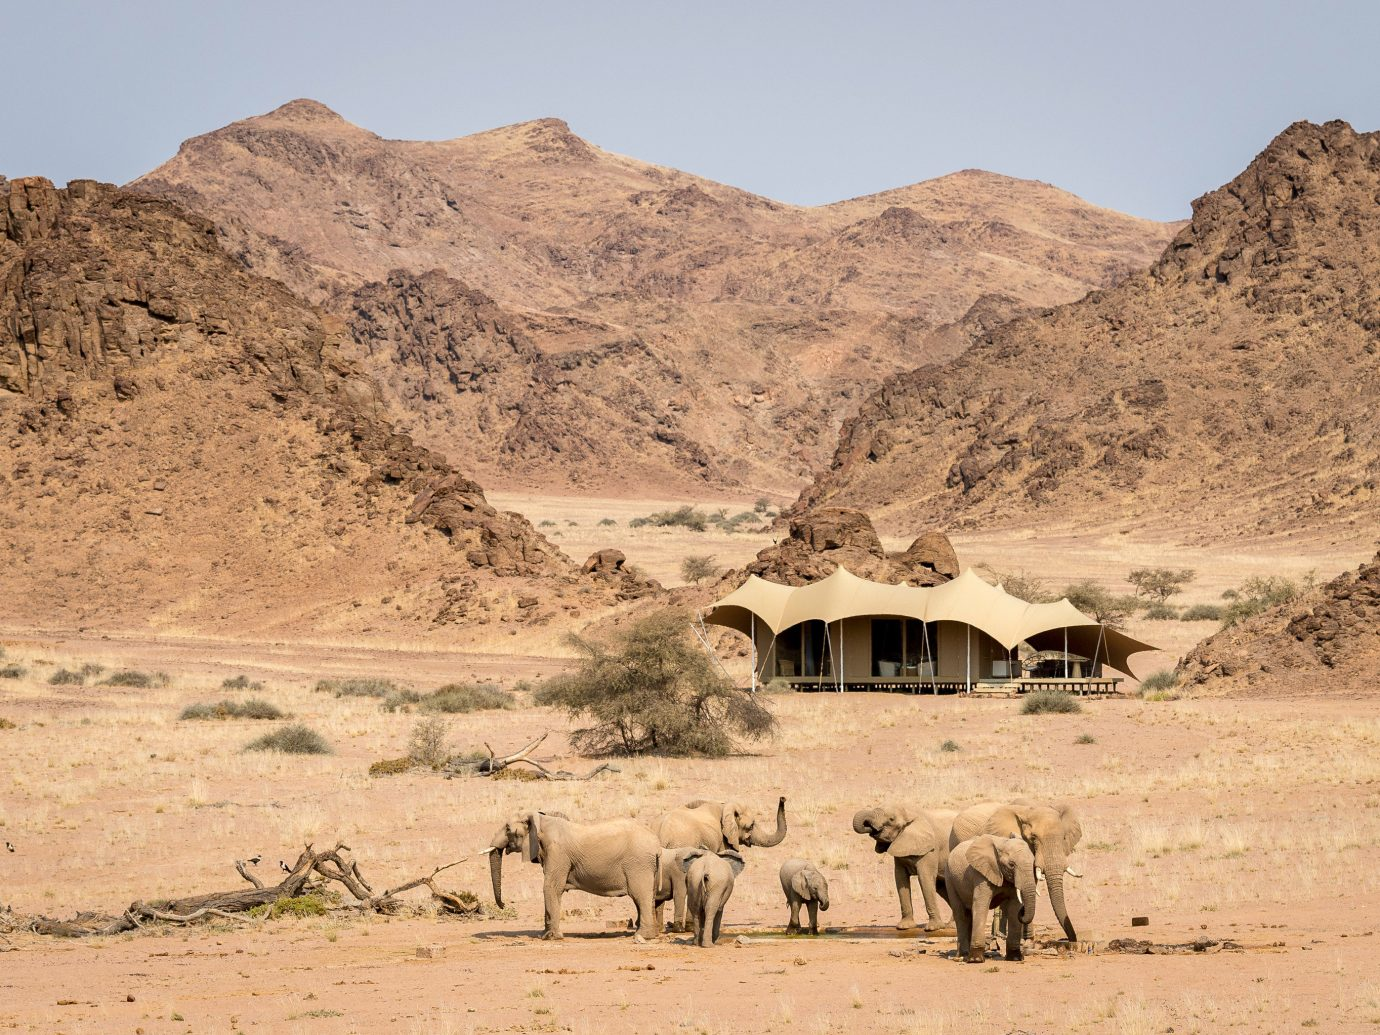 Hotels mountain outdoor sky ground Desert natural environment wilderness animal mammal wadi Camel steppe aeolian landform sahara savanna landscape herd valley dirt Wildlife plateau Safari Adventure arabian camel geology